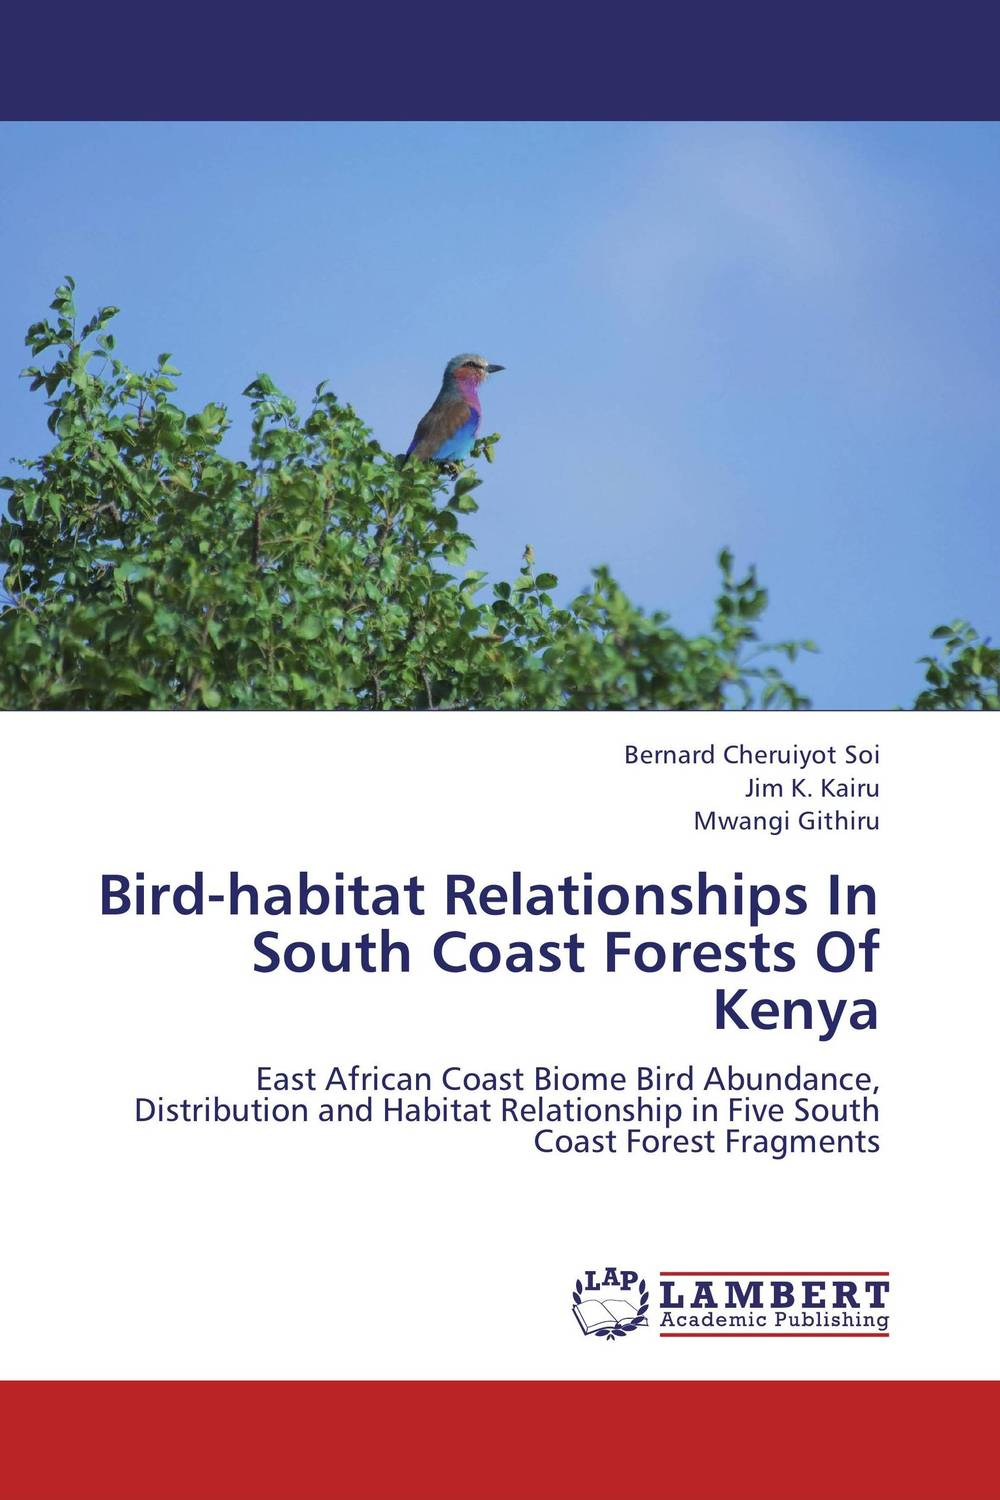 Bird-habitat Relationships In South Coast Forests Of Kenya